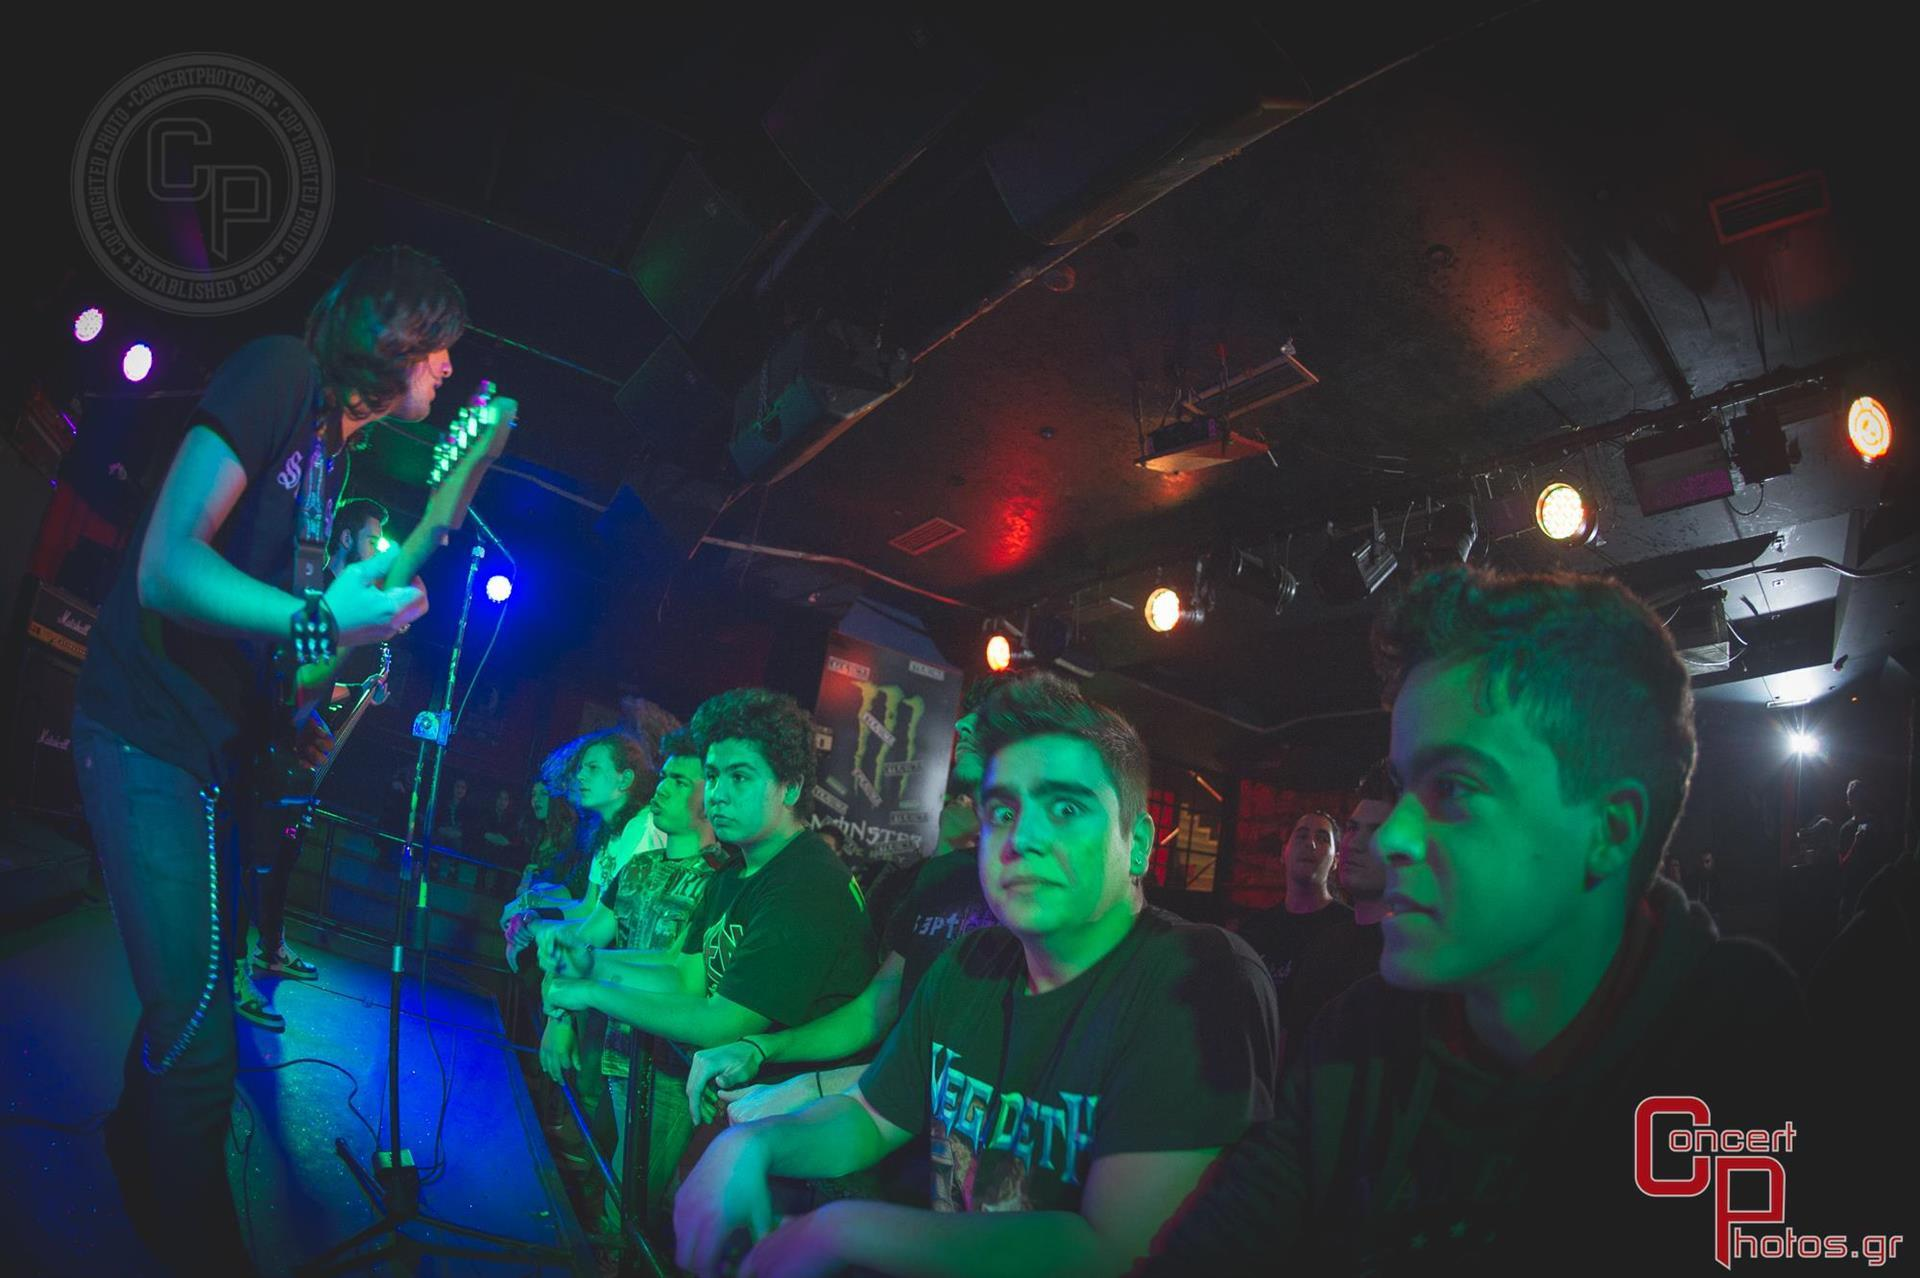 Battle Of The Bands Athens - Leg 3- photographer:  - ConcertPhotos - 20150104_2321_51